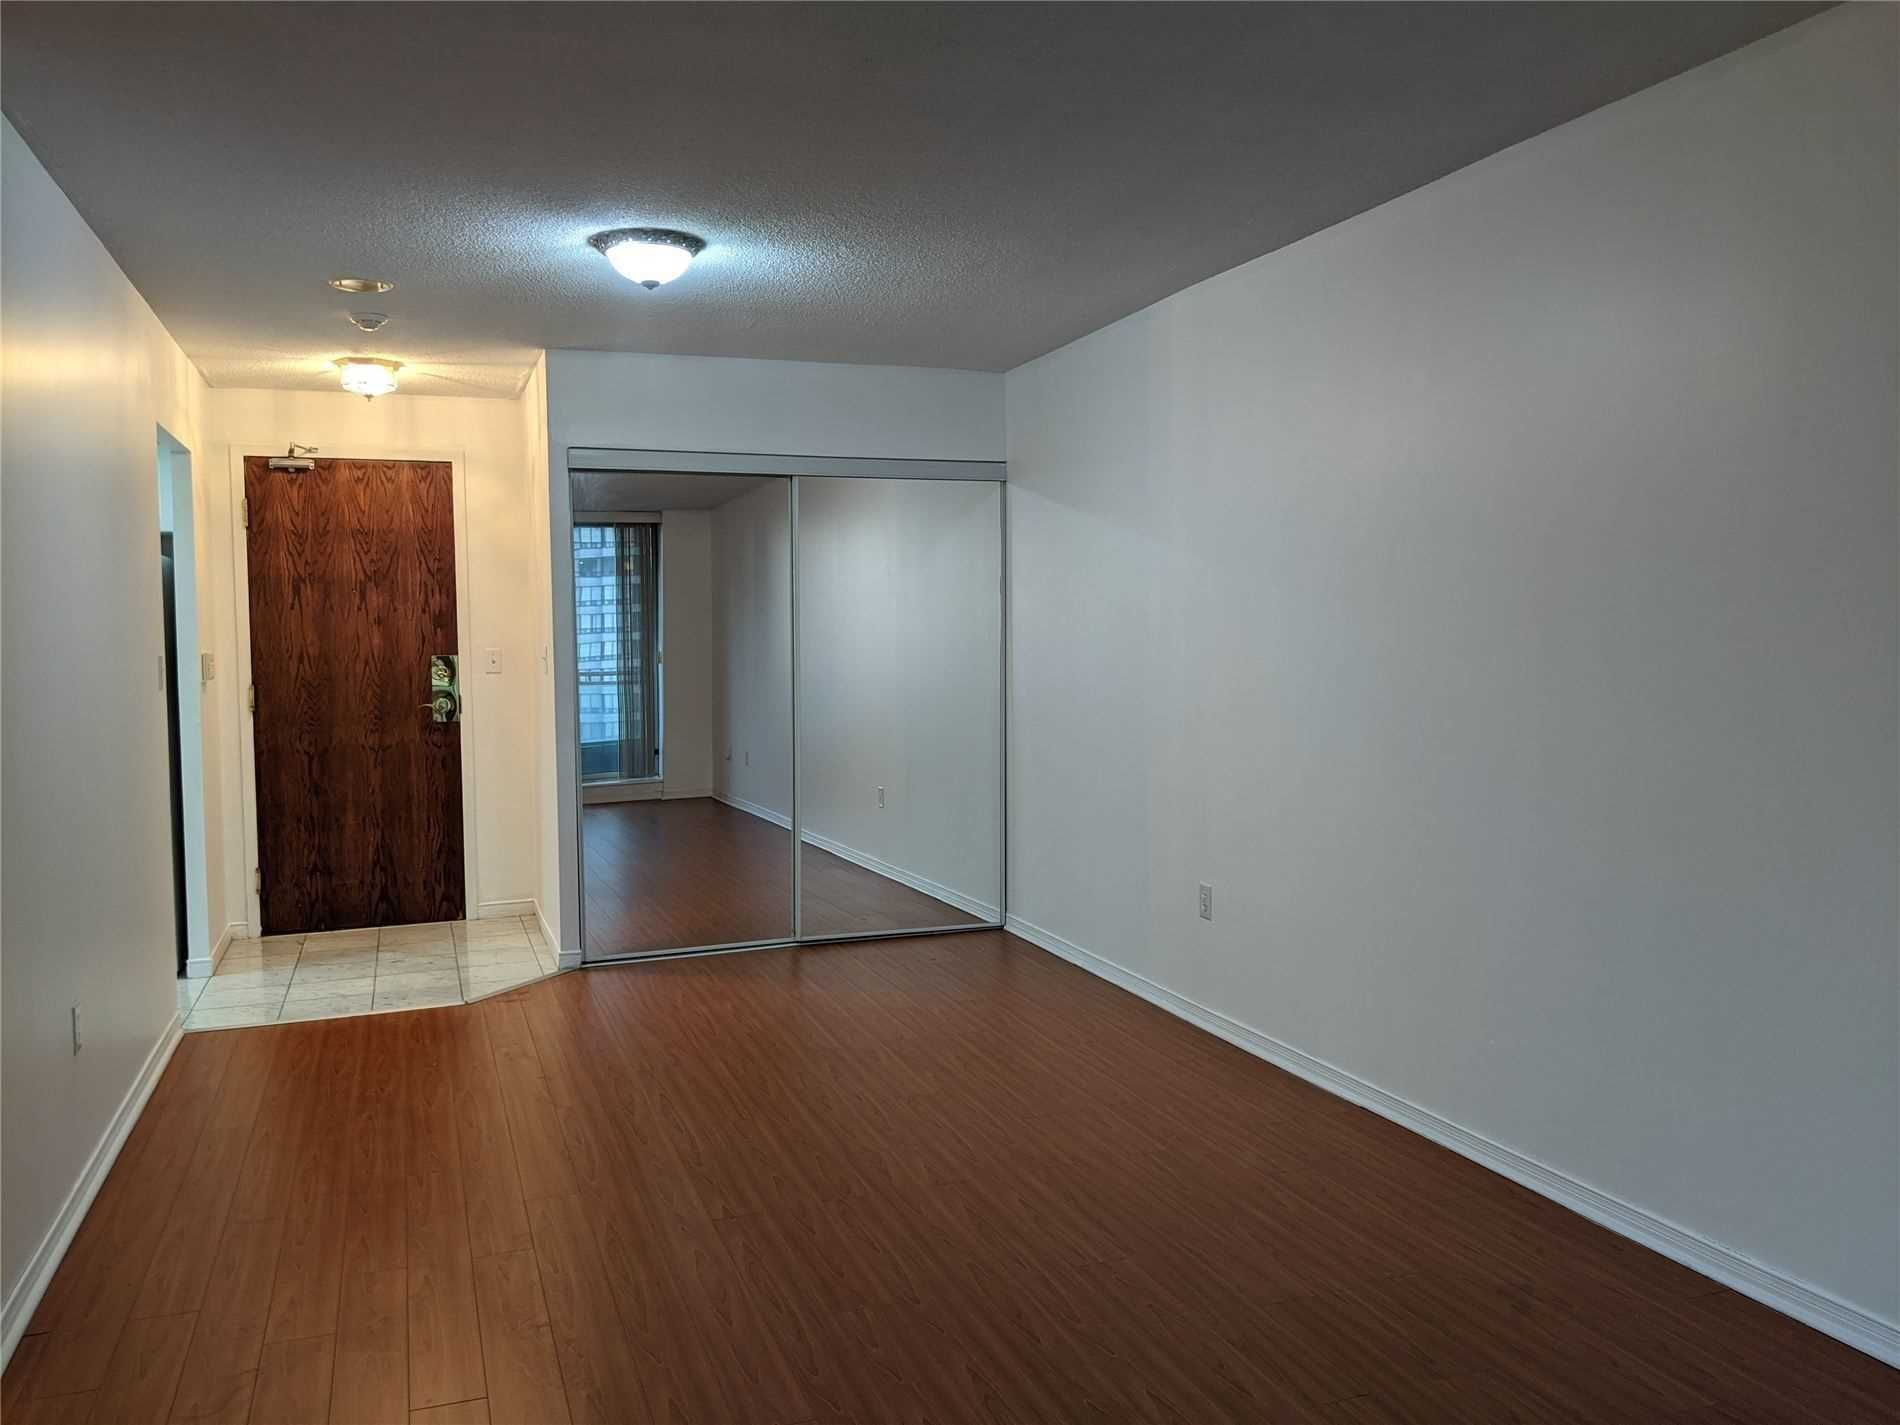 3 Pemberton Ave, unit 905 for rent in Toronto - image #1